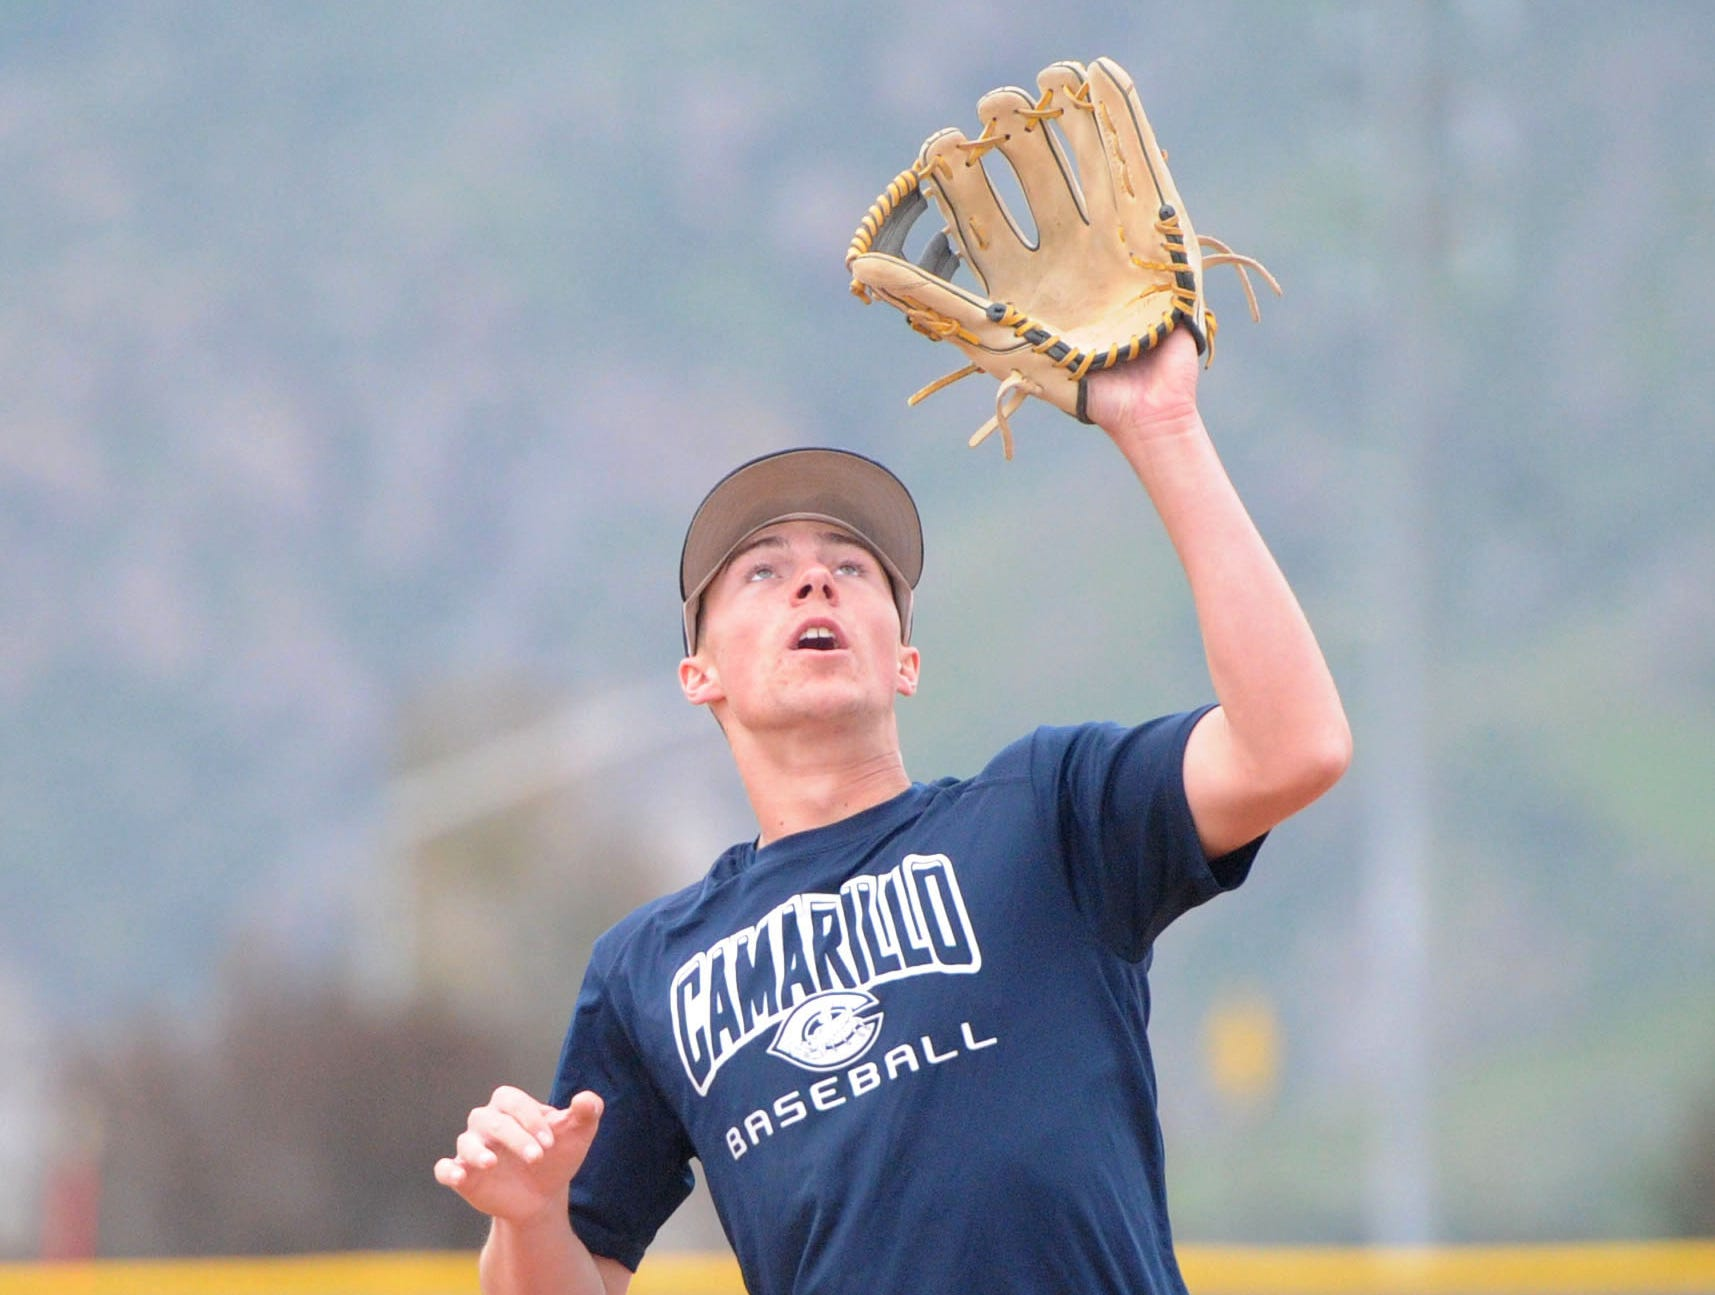 Taylor Tractenberg catches a pop-up during Camarillo High's practice Wednesday.